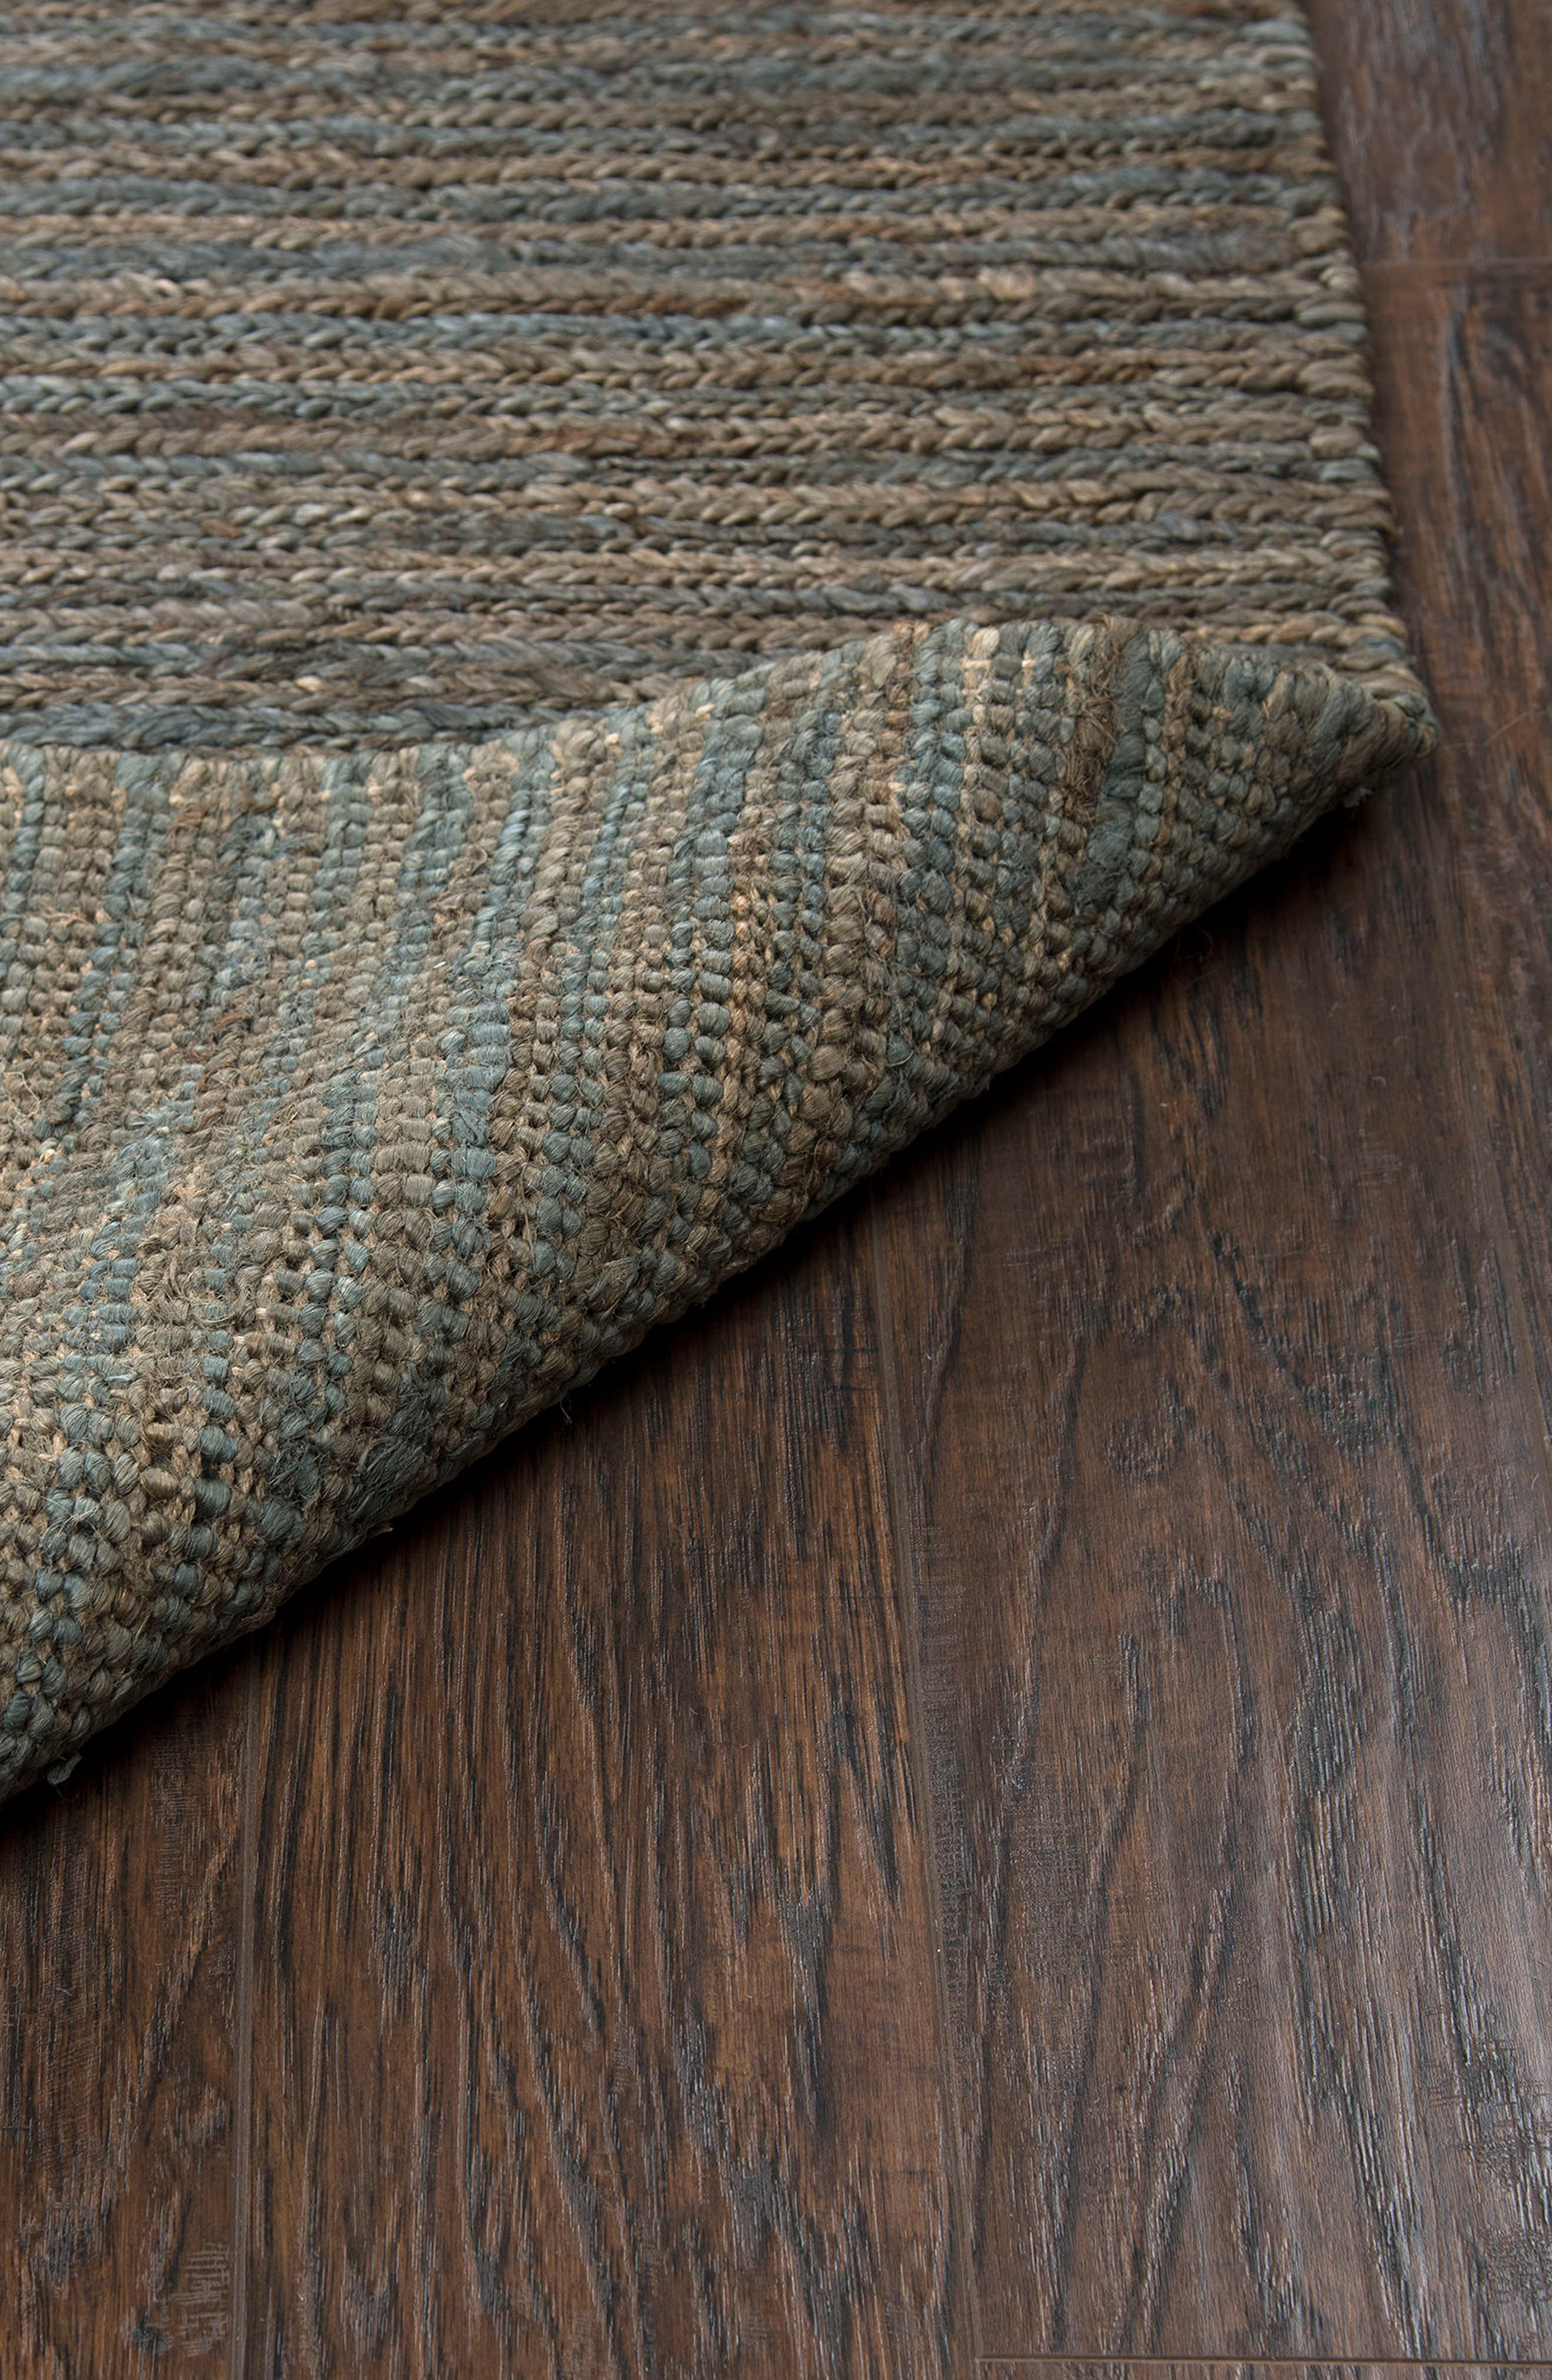 'Whittier Collection' Handwoven Jute Area Rug,                             Alternate thumbnail 5, color,                             400